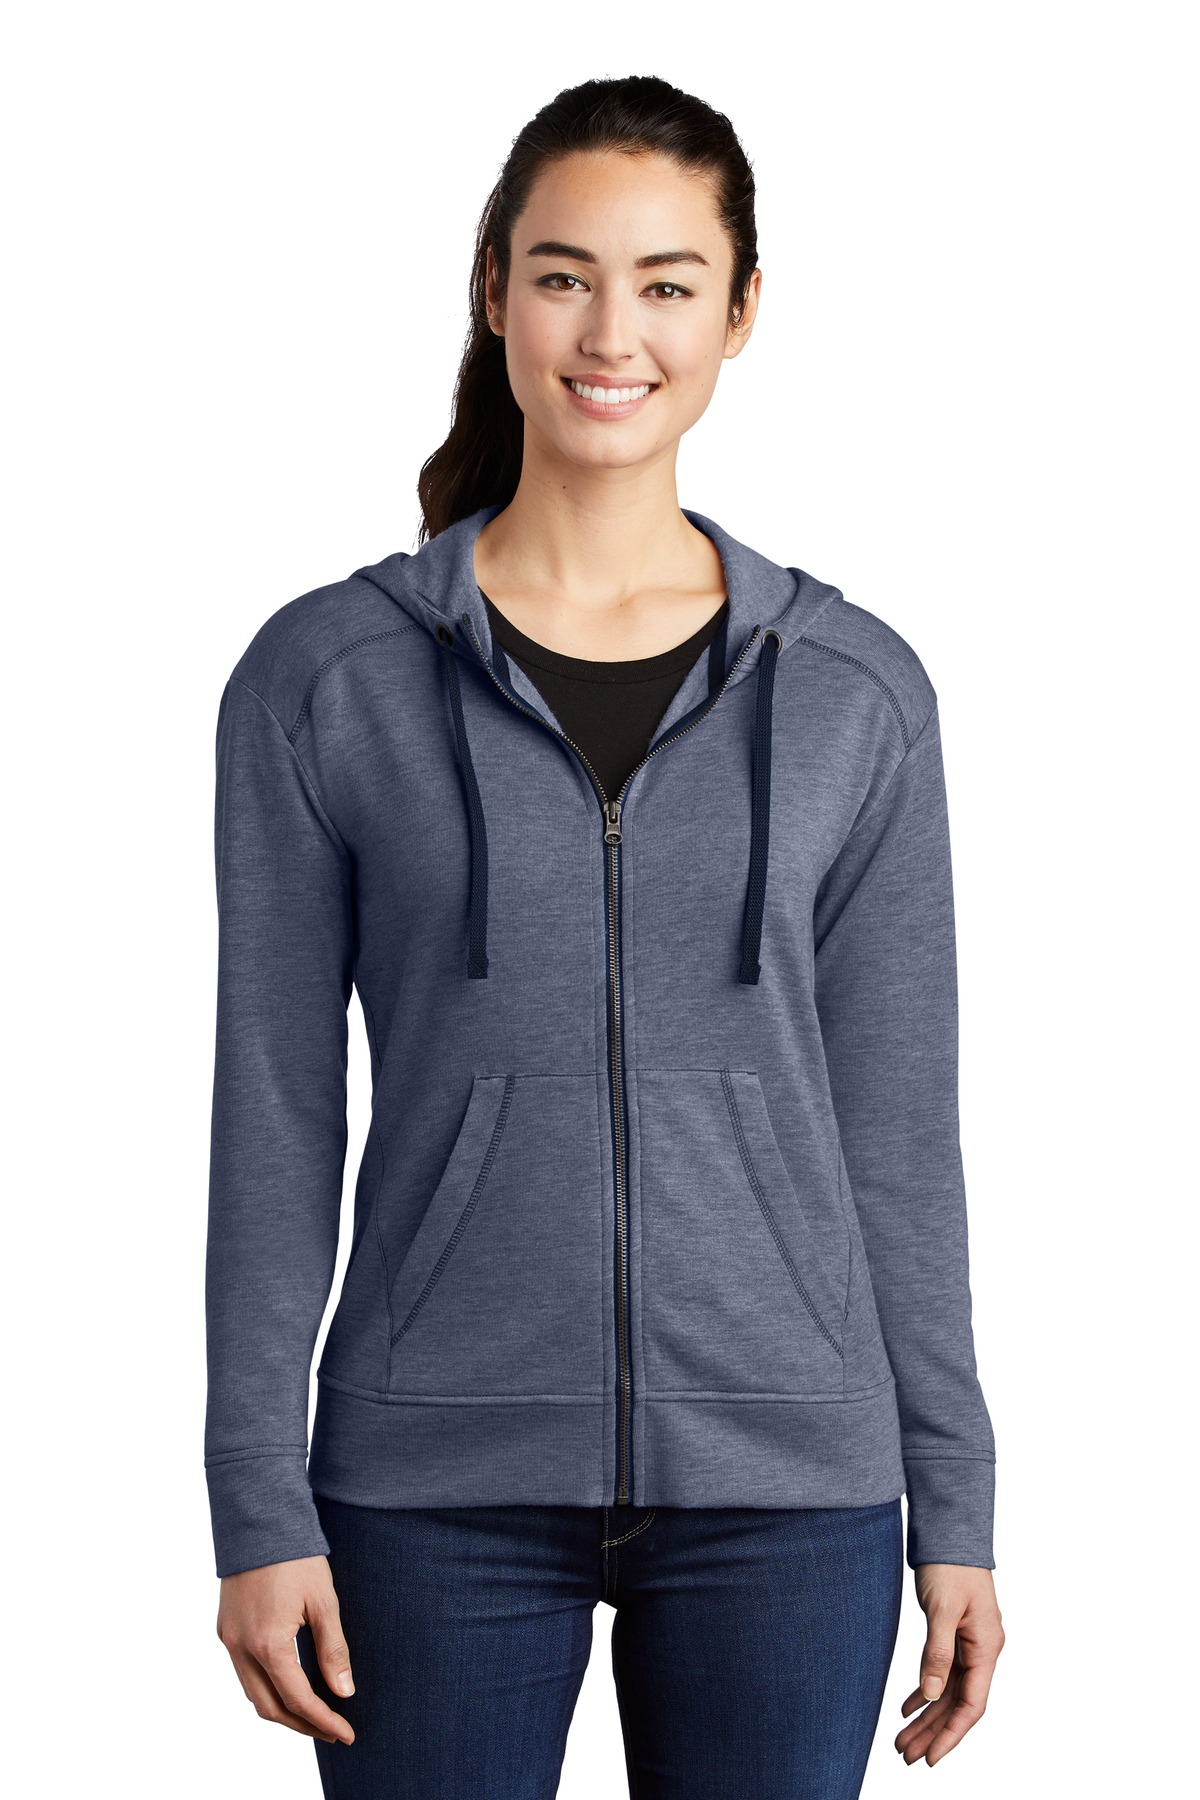 Sport-Tek  ®  Ladies PosiCharge  ®  Tri-Blend Wicking Fleece Full-Zip Hooded Jacket LST293 - True Navy Heather